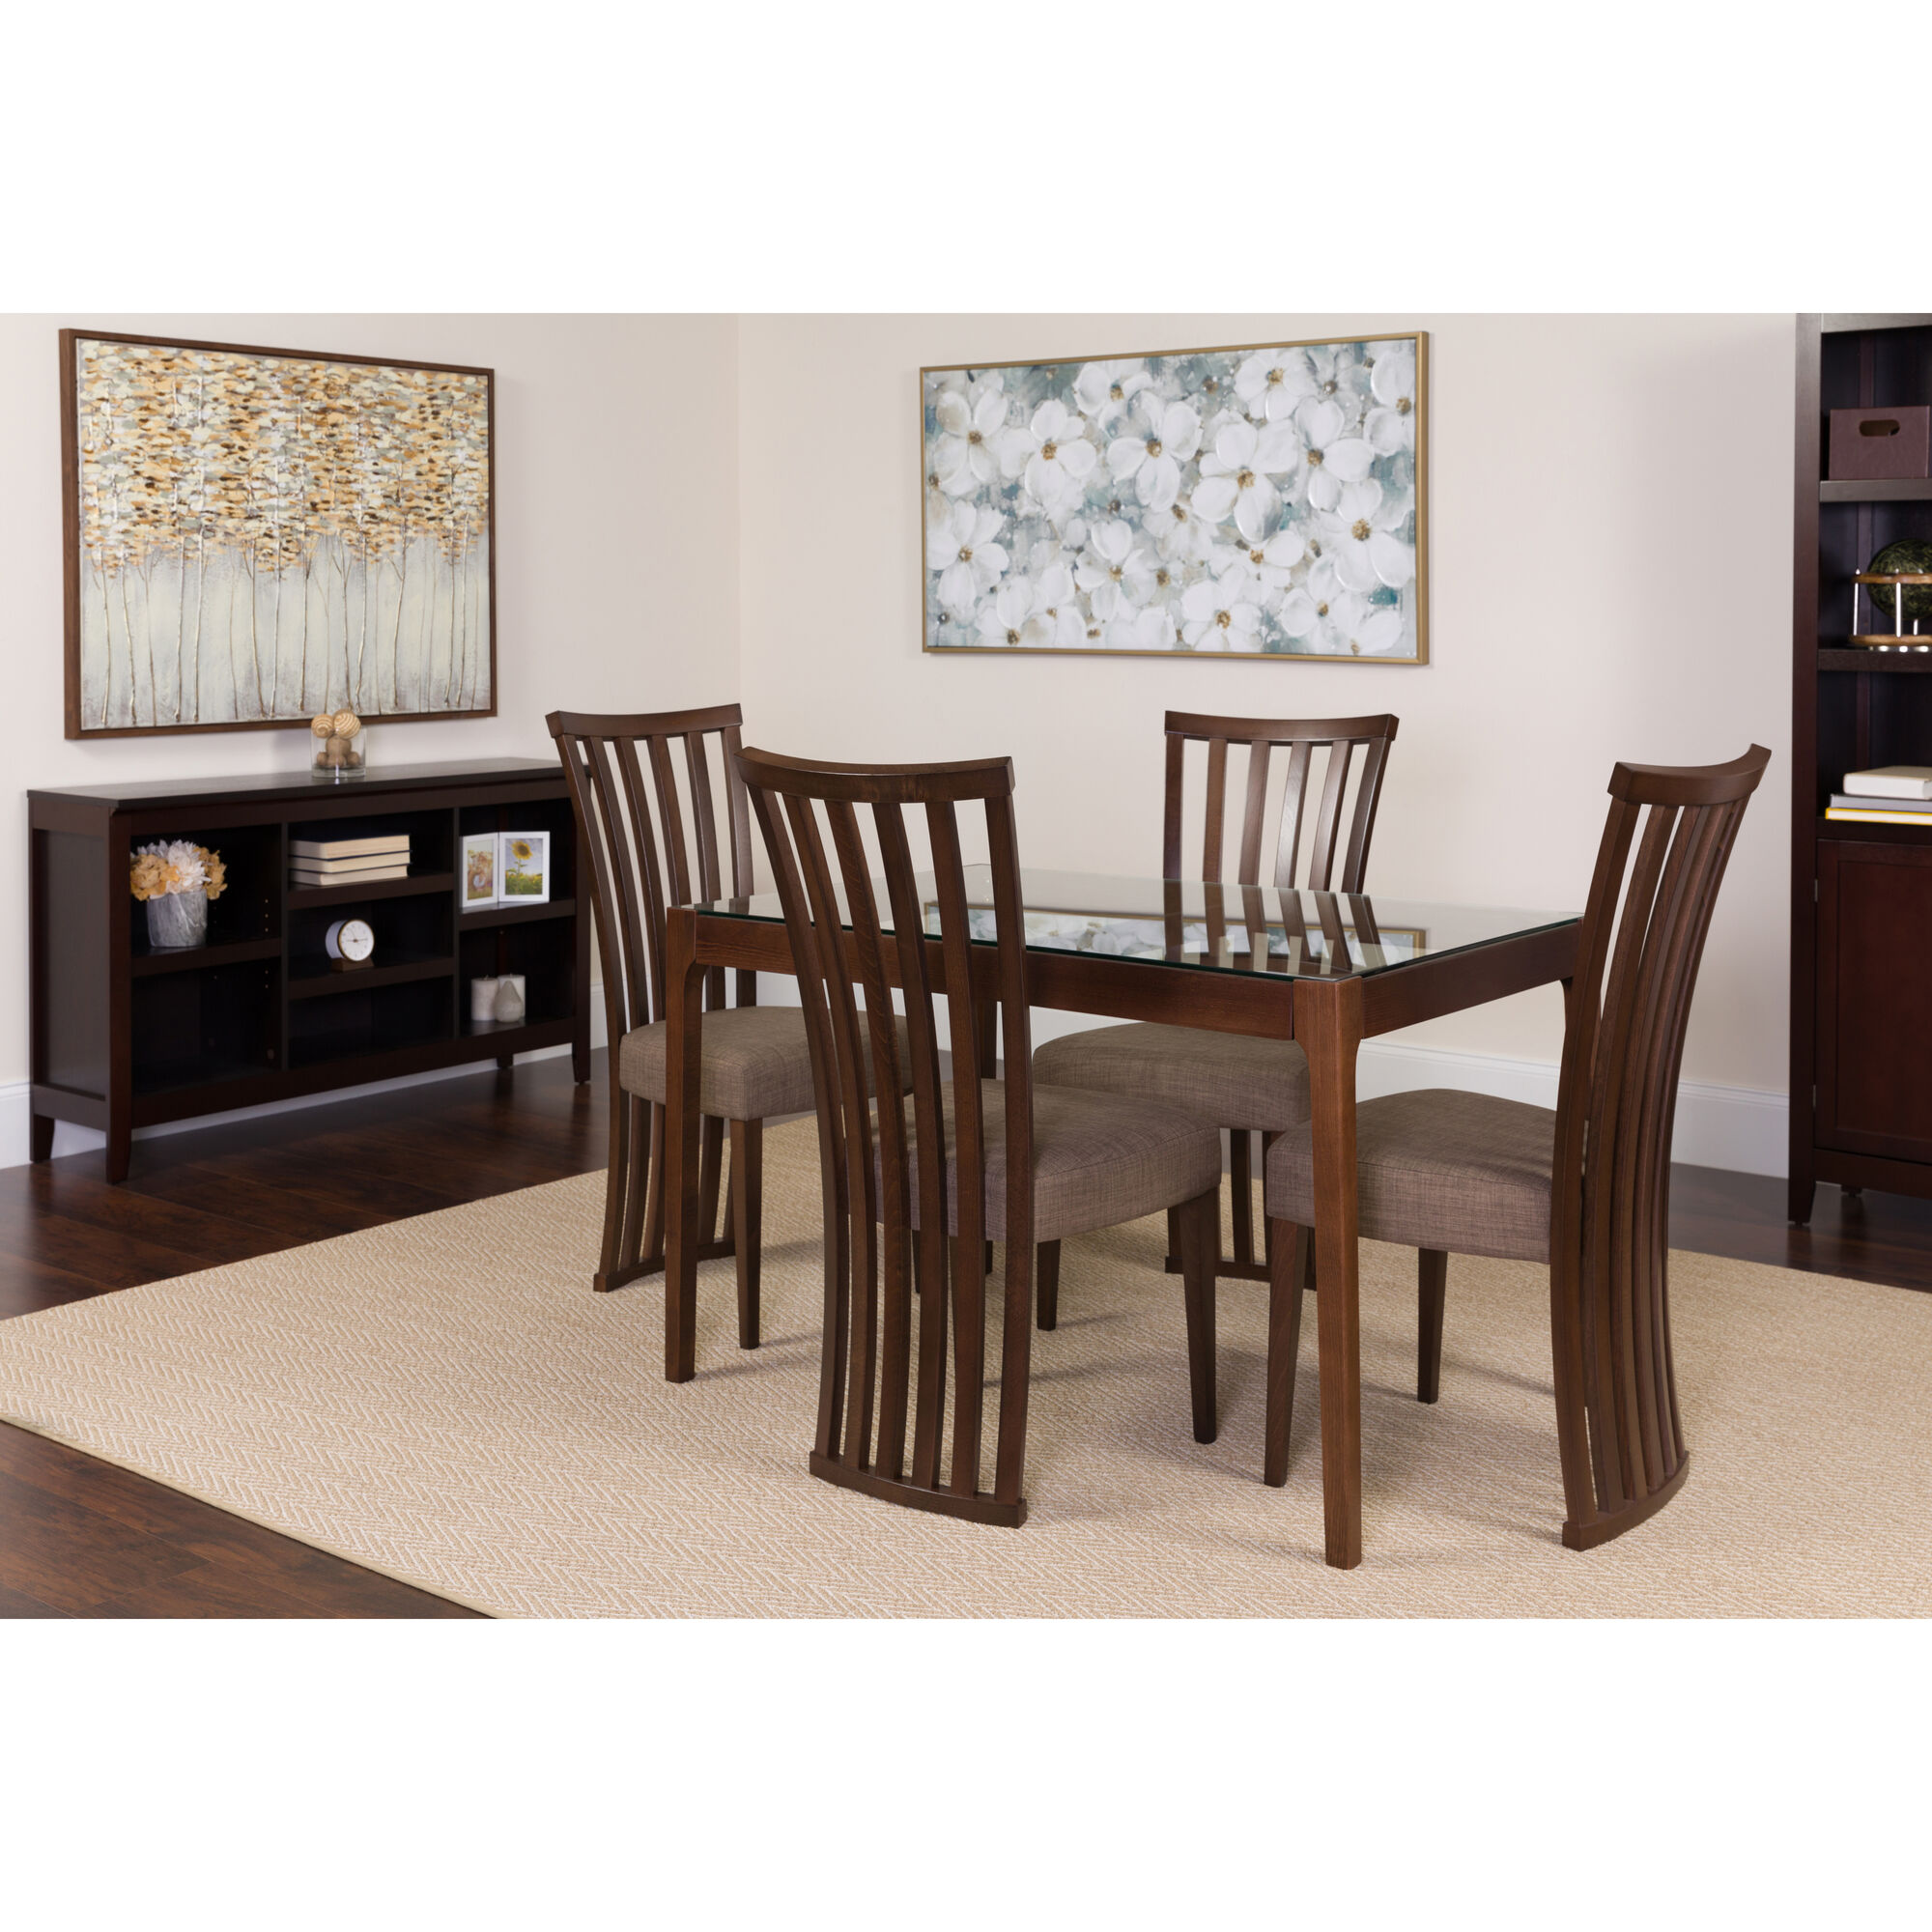 Our oakdale 5 piece espresso wood dining table set with glass top and dramatic rail back